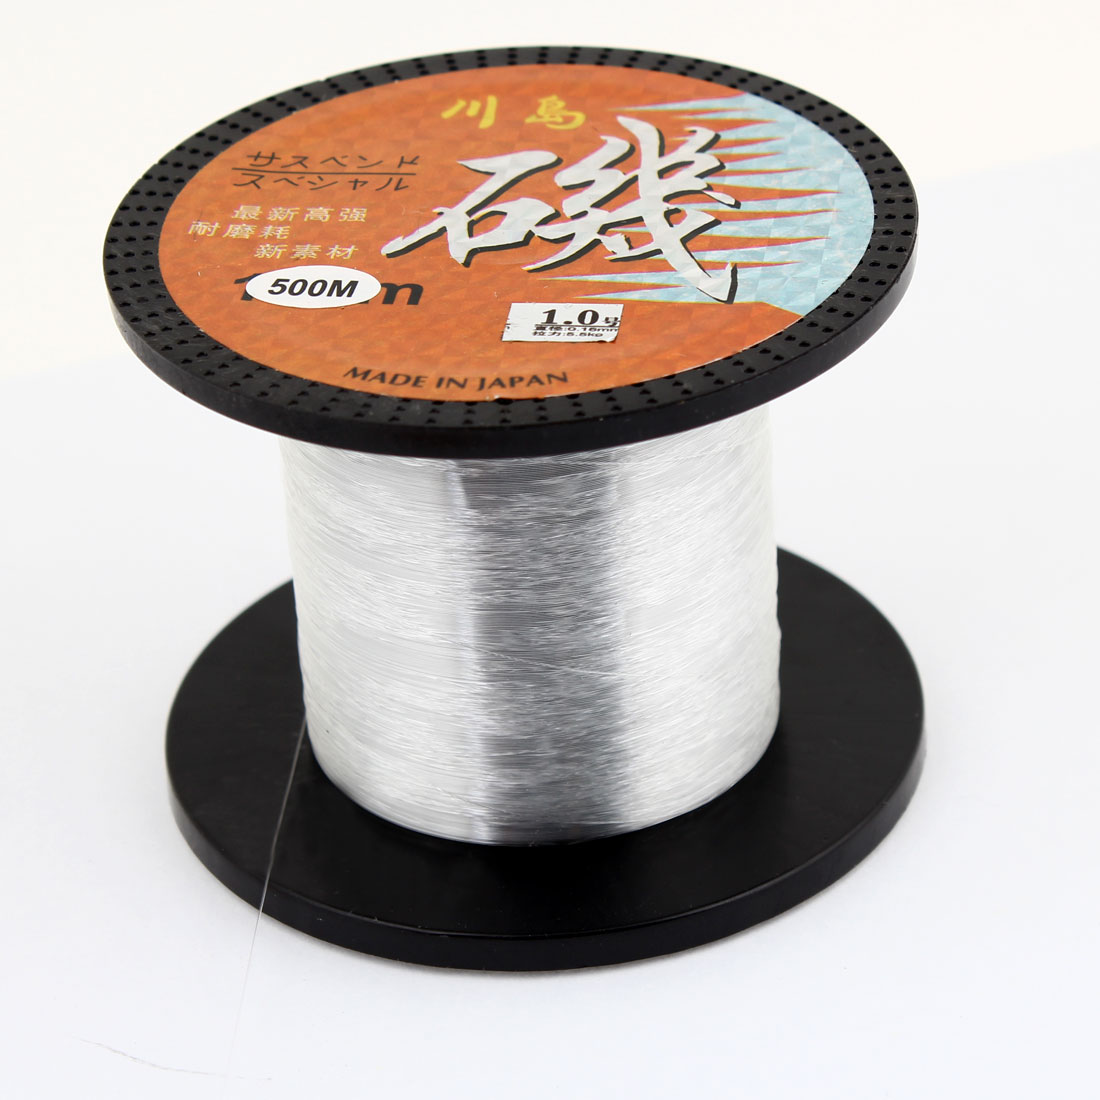 500M 0.16mm Dia 5.5Kg White Nylon Abrasion Resistance Fishing Line 1.0#